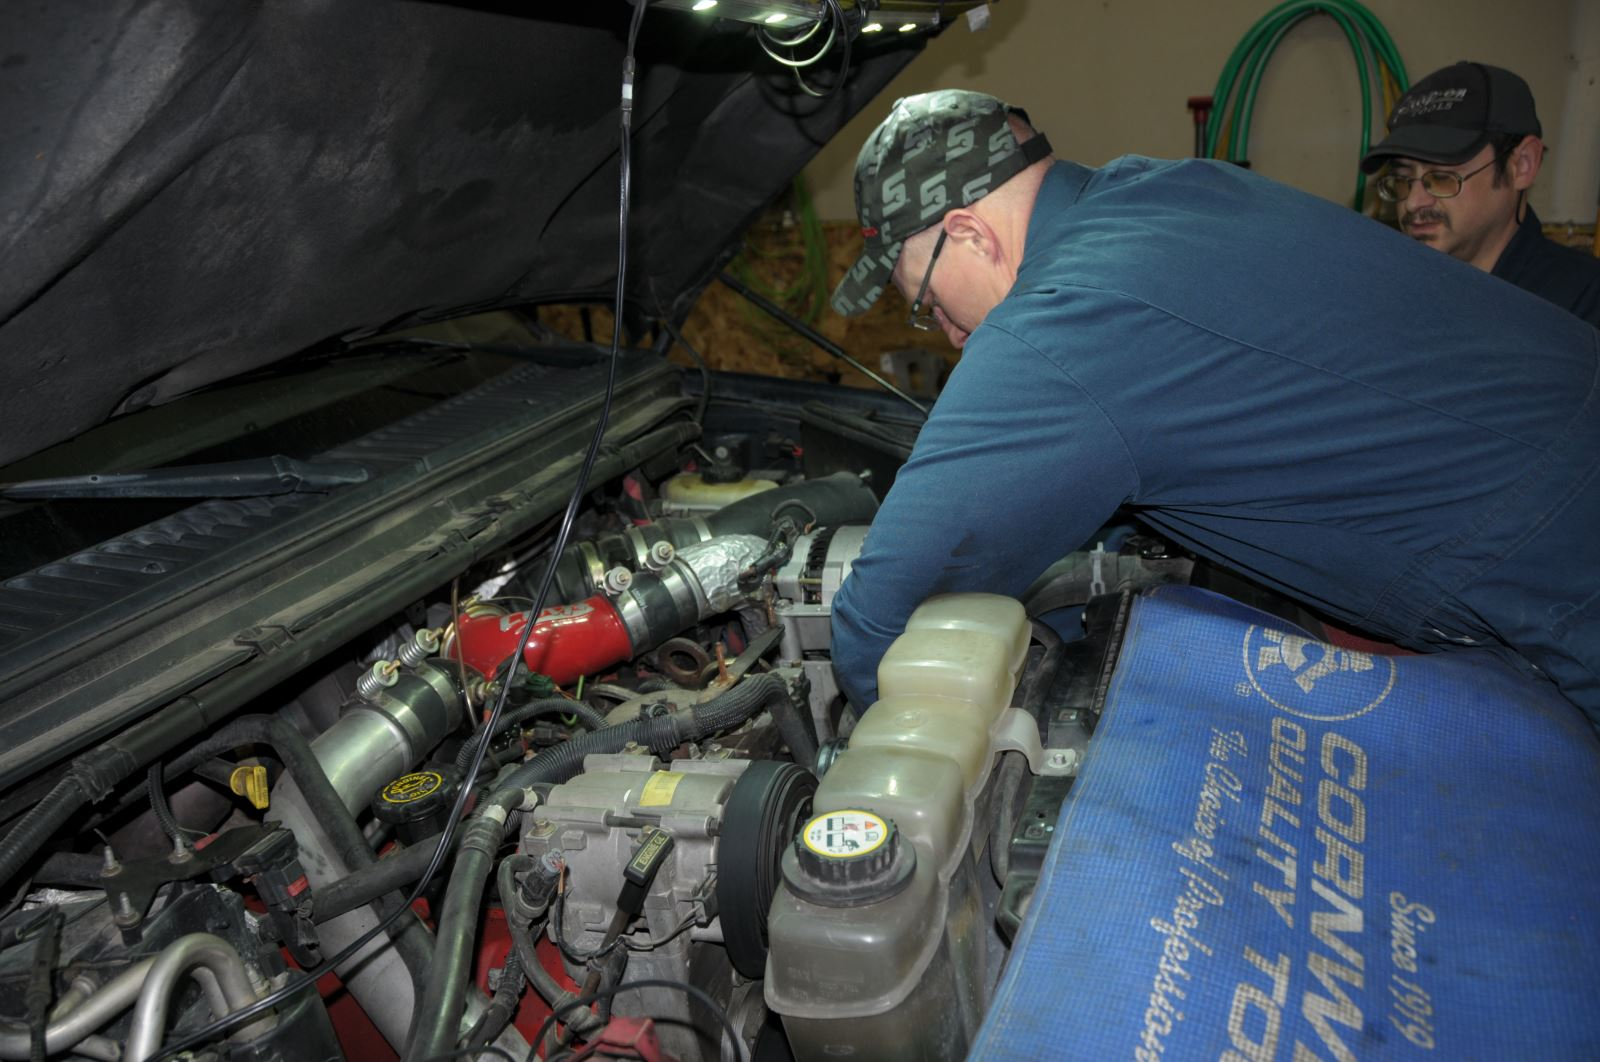 Summit Power Steering Pump Right Turn Made Easy For The 73l Bolt Conversion Kit Diesel Tech Magazine